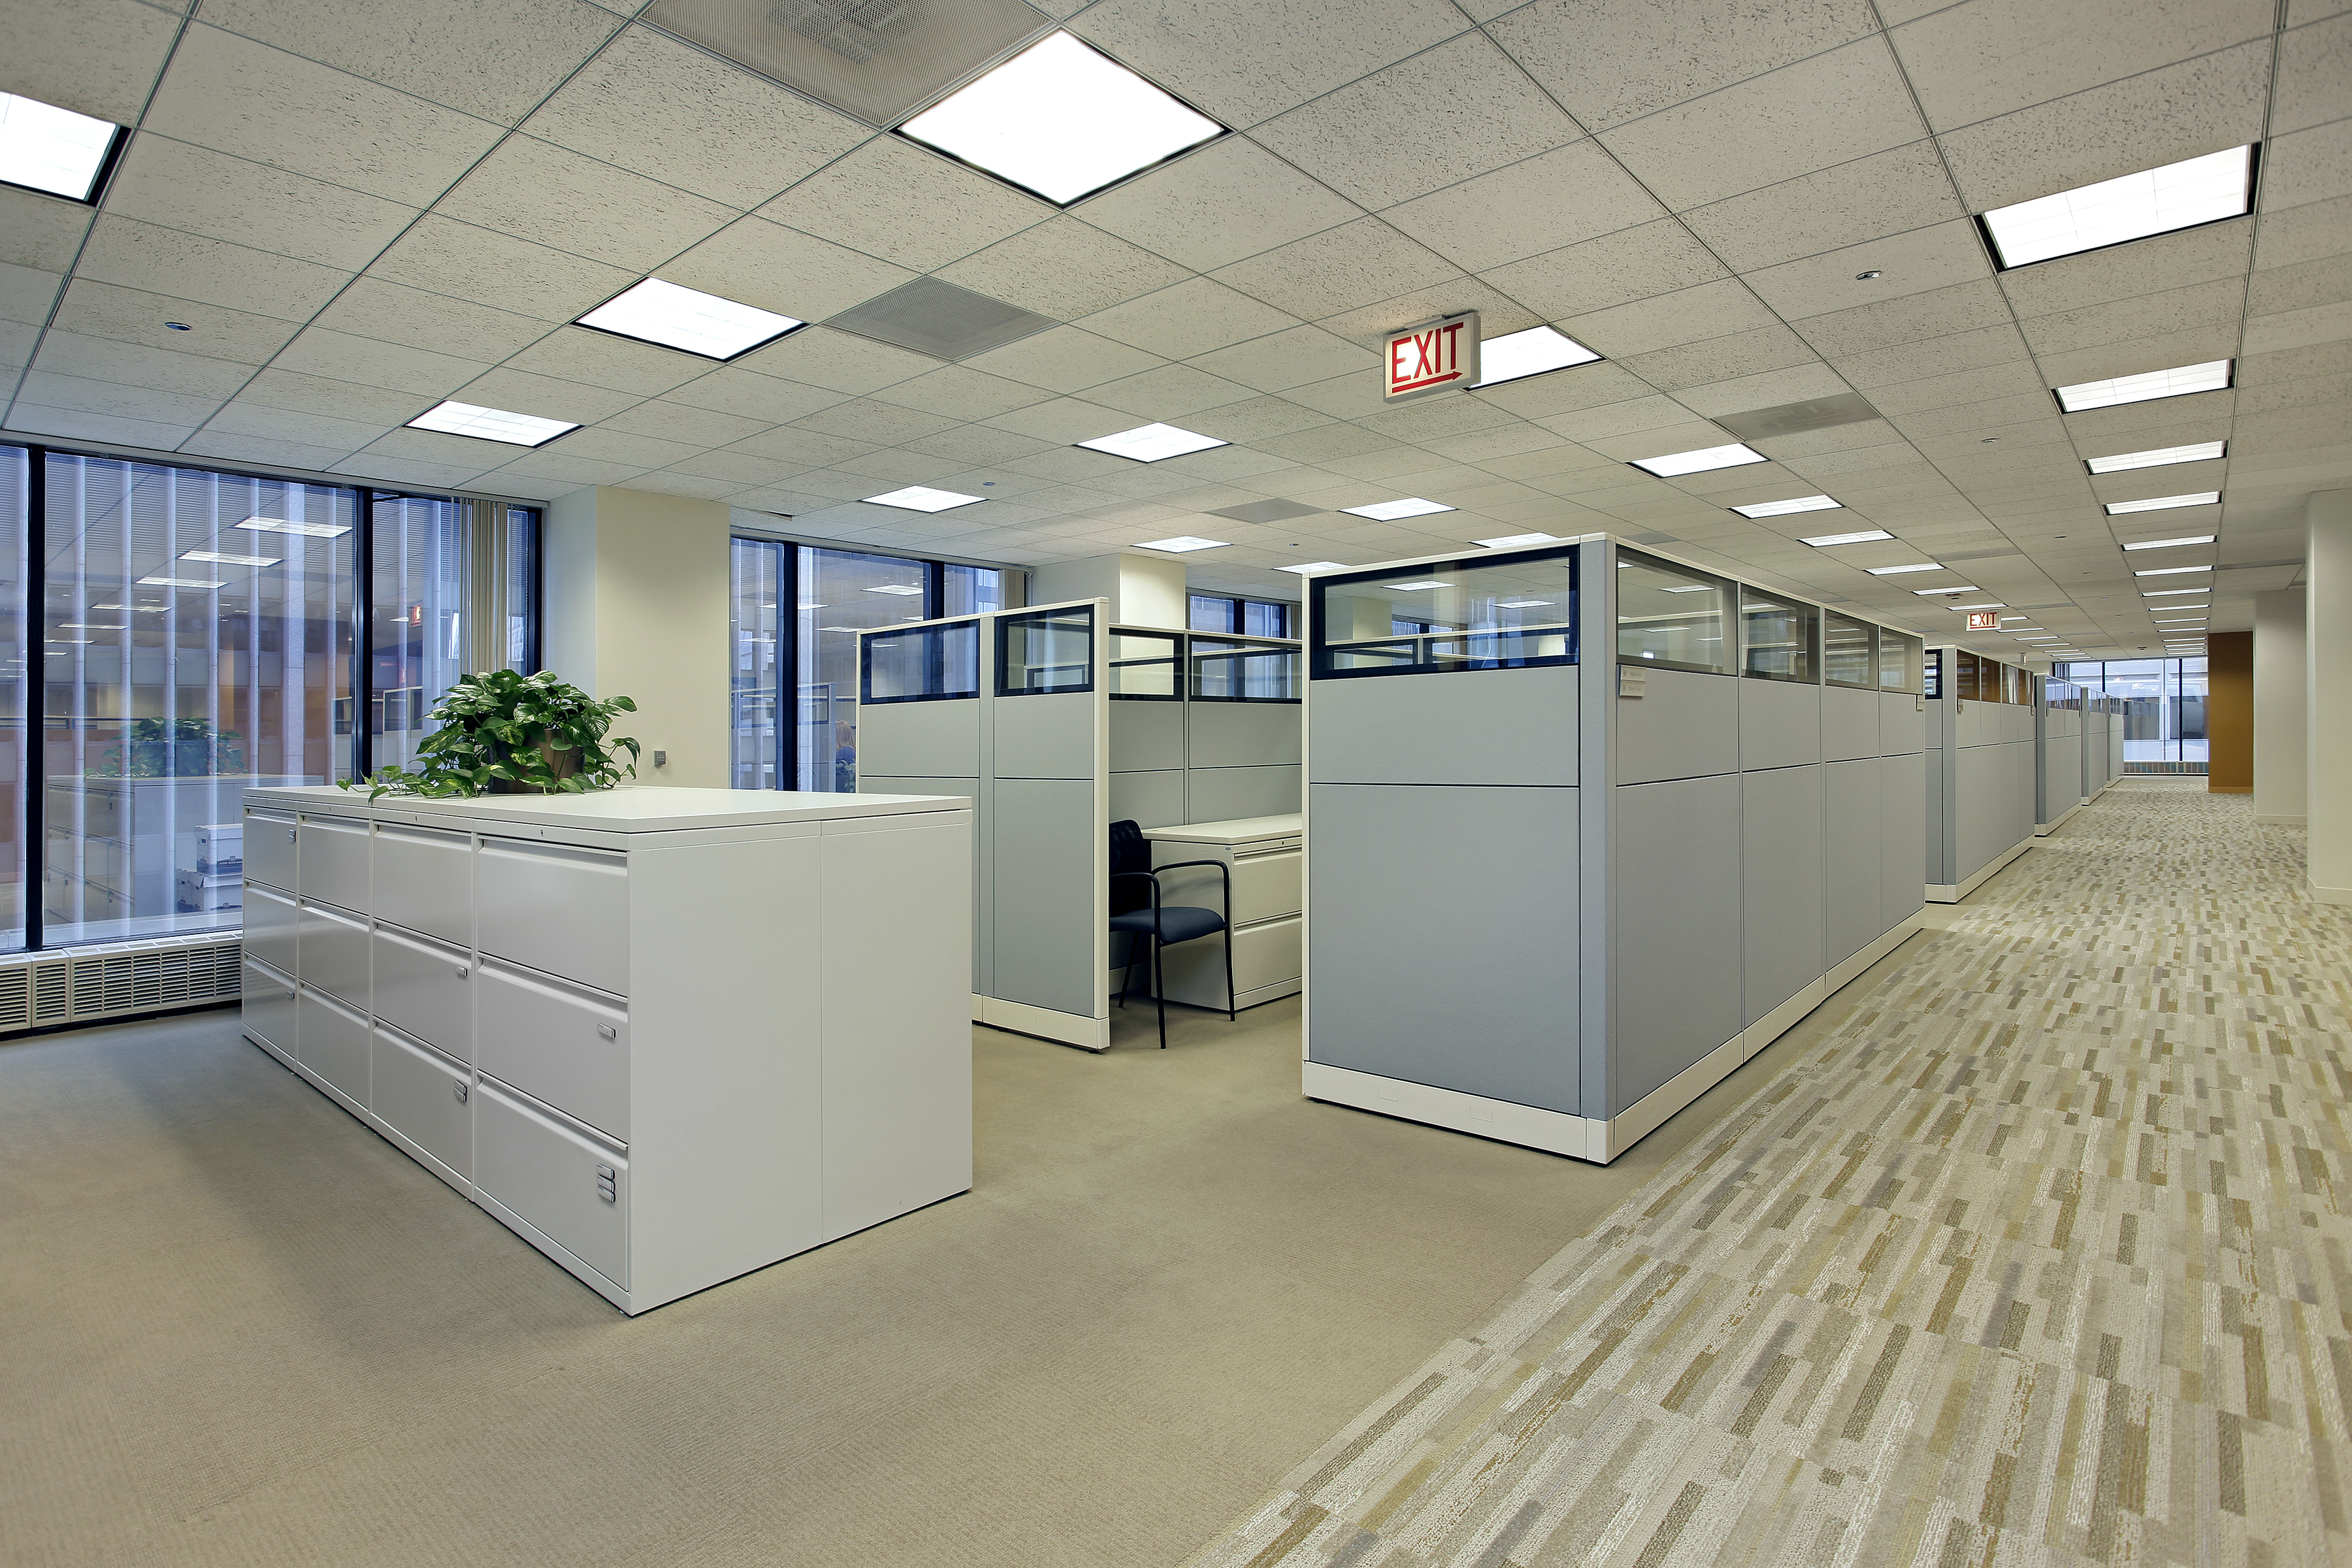 Office area with cubicles in high rise building.jpg